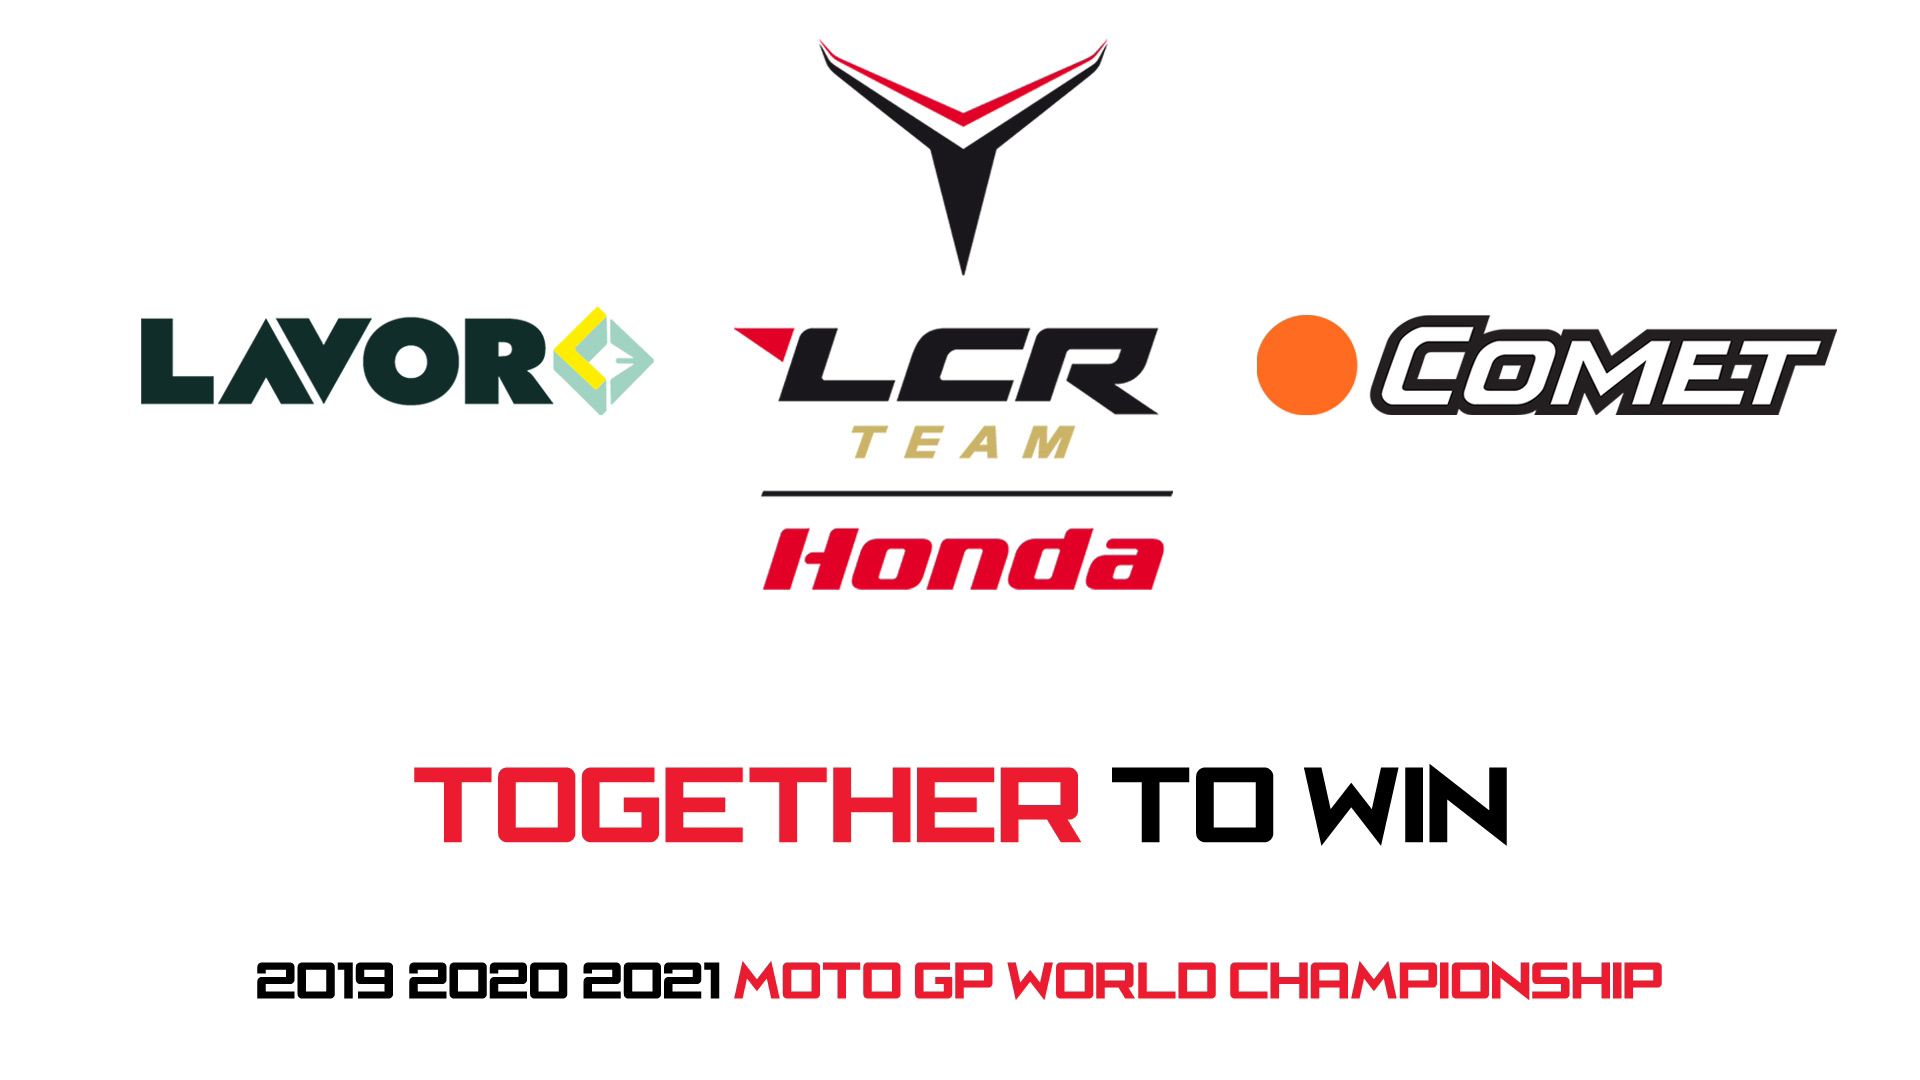 together to win Comet LCR Honda